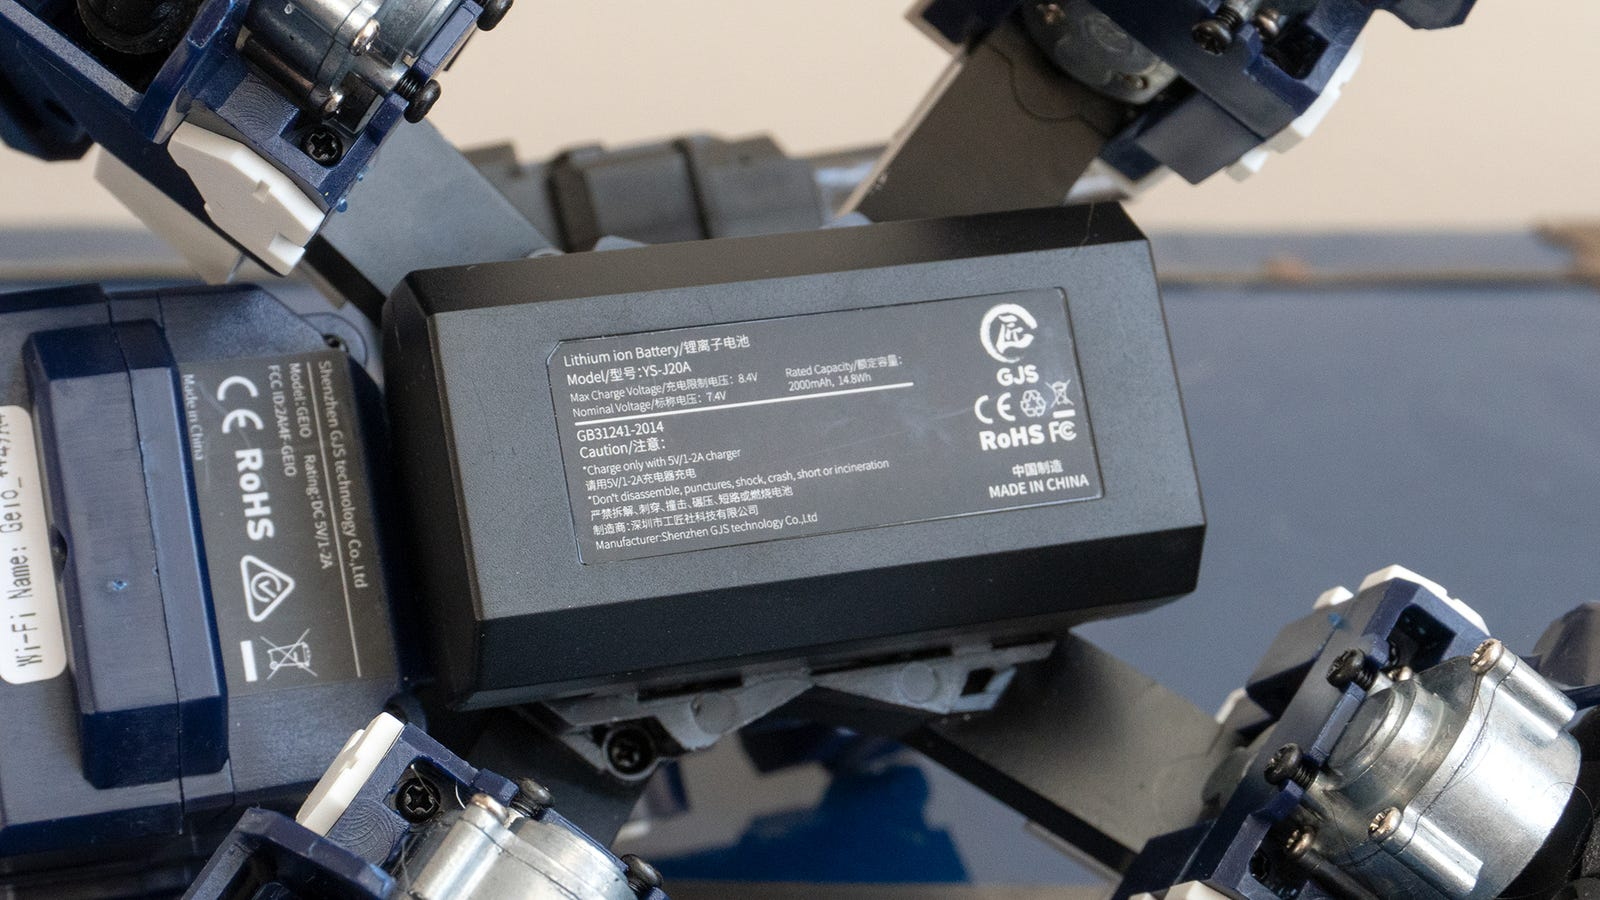 A hefty 2,000 mAh battery gives the robot a startling amount of speed. At times it can move almost too quickly.